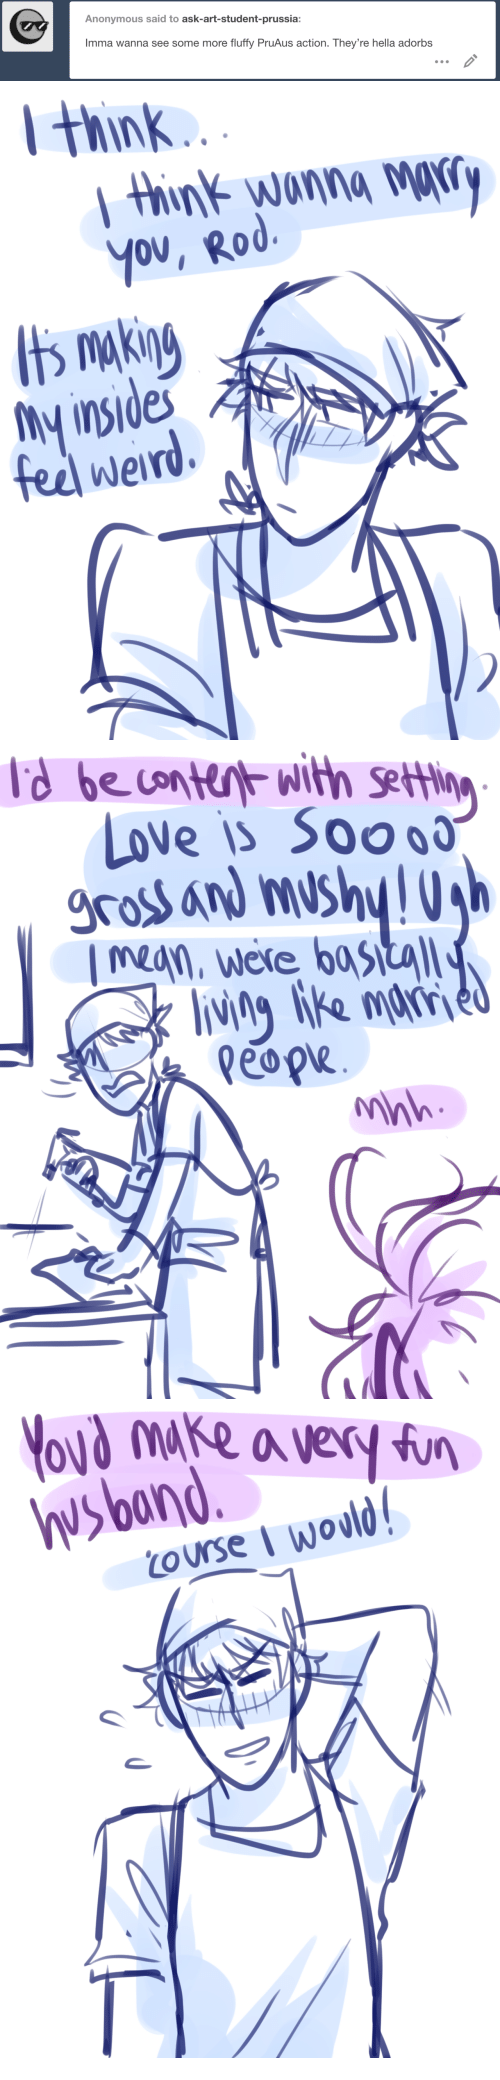 Love, Some More, and Weird: Anonymous said to ask-art-student-prussia:  Imma wanna see some more fluffy PruAus action. They're hella adorbs   Hhink  nwonna MKr  My insides  fee weird.   LoVe is Soo  gross and mushy!  mean, were bastal  lviie mar  nk   hvsband.y  ourse I wovld  LO